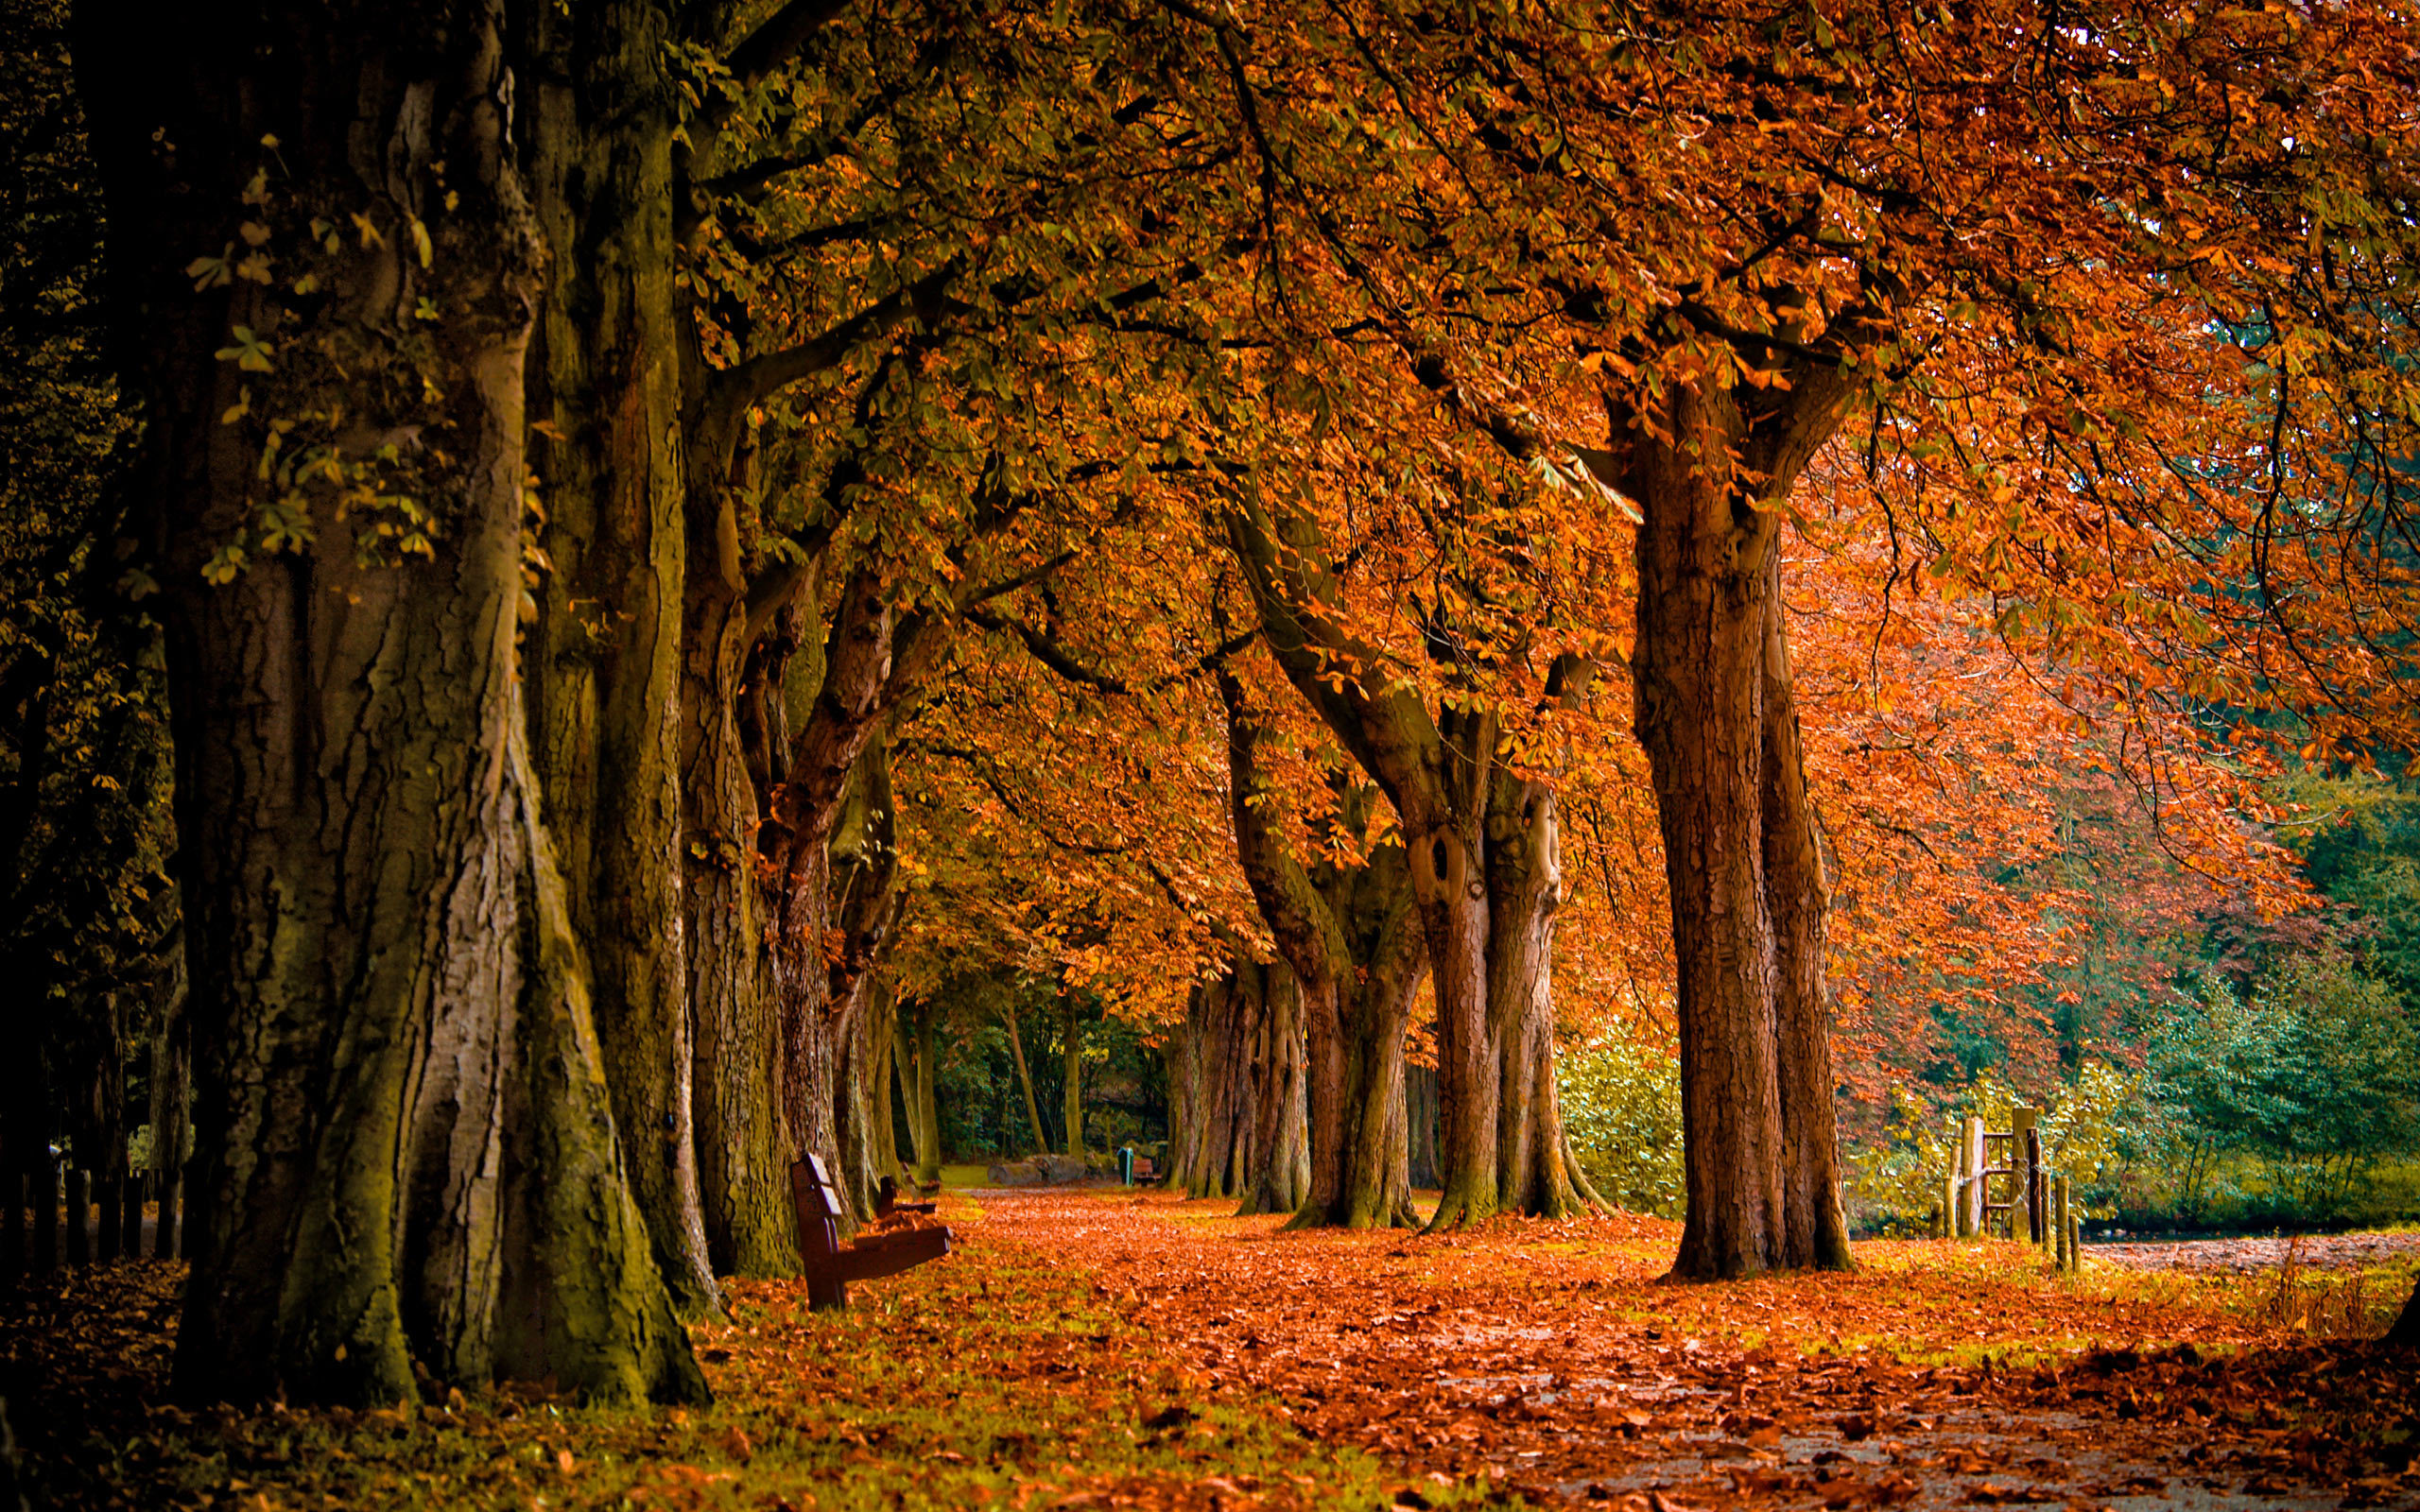 AUTUMN fall tree forest landscape nature leaves